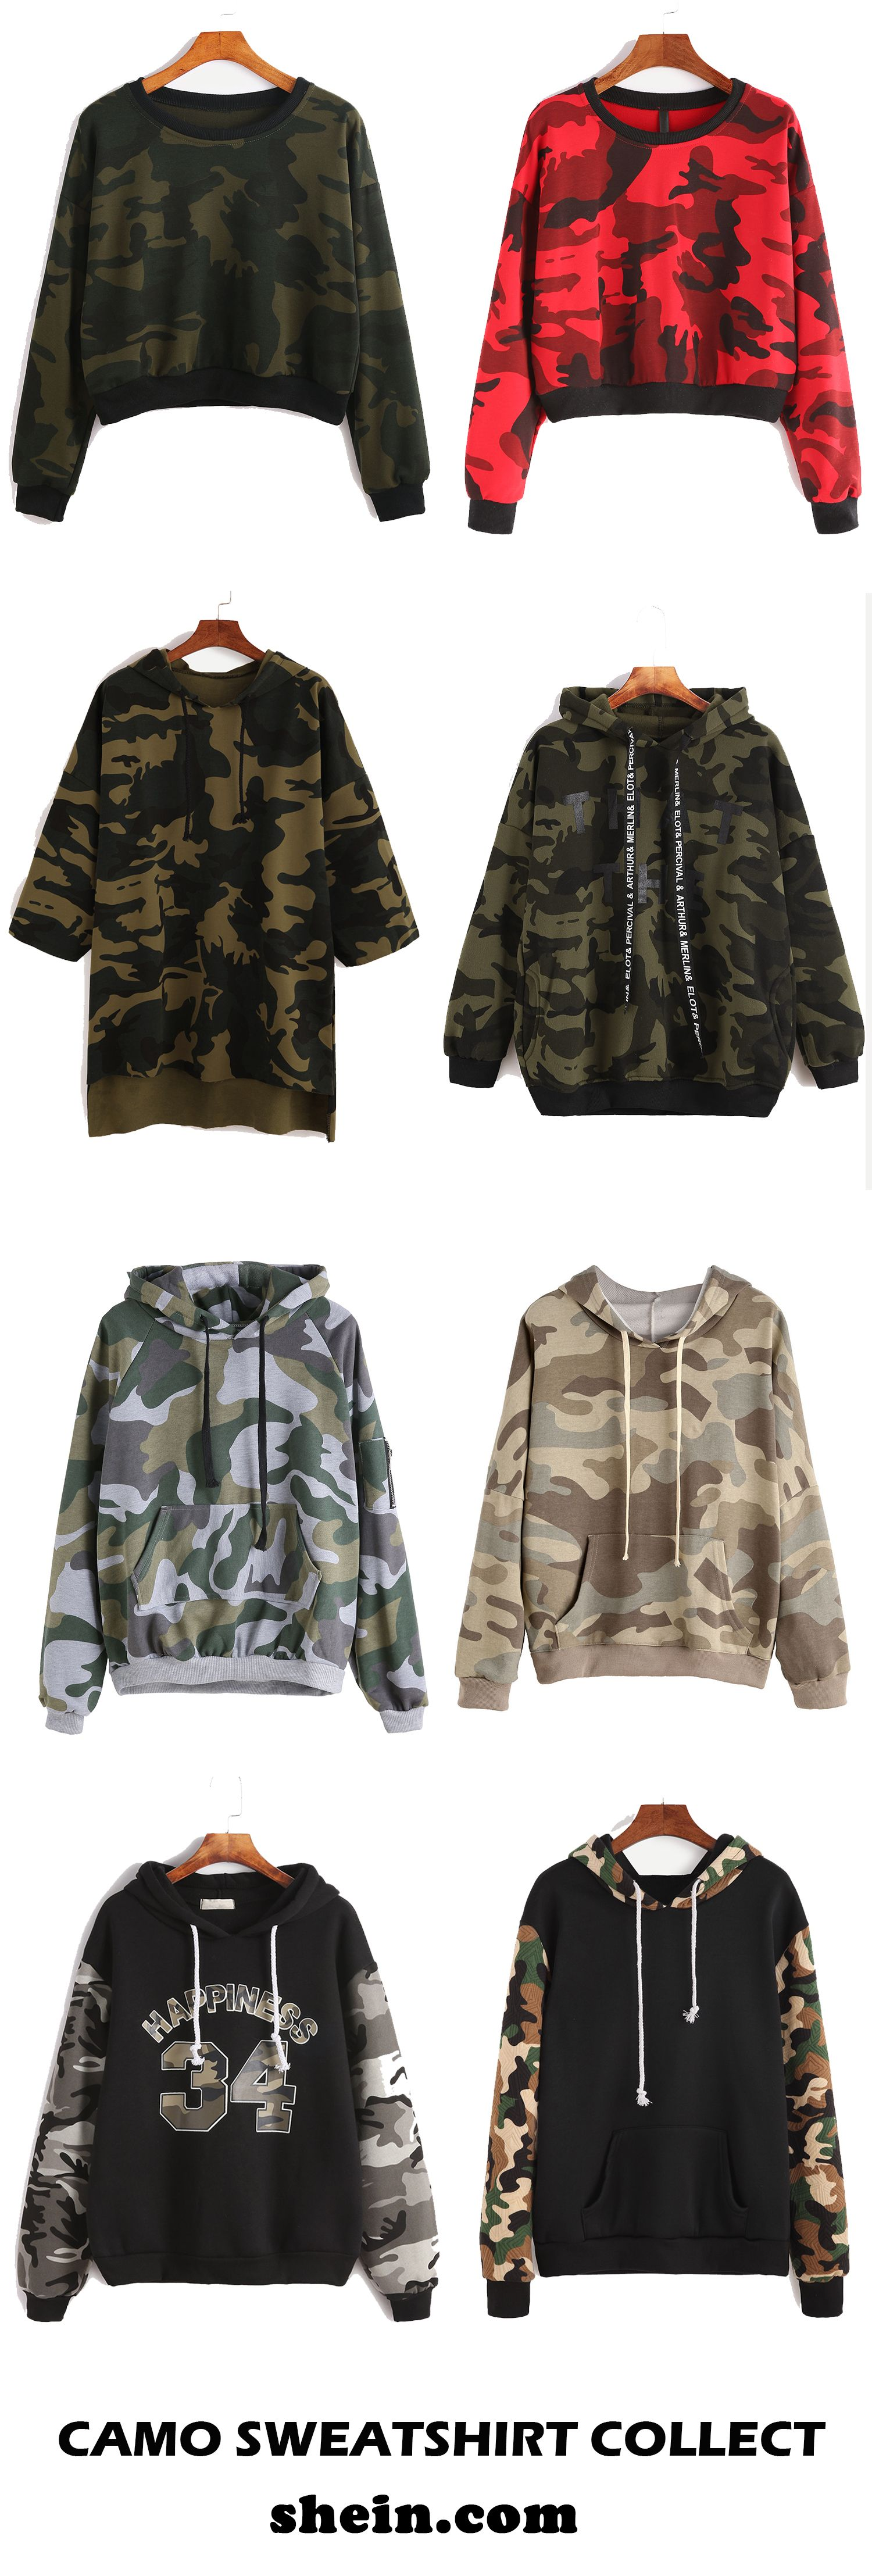 Camo sweatshirt collect for women. Start from $11.9.